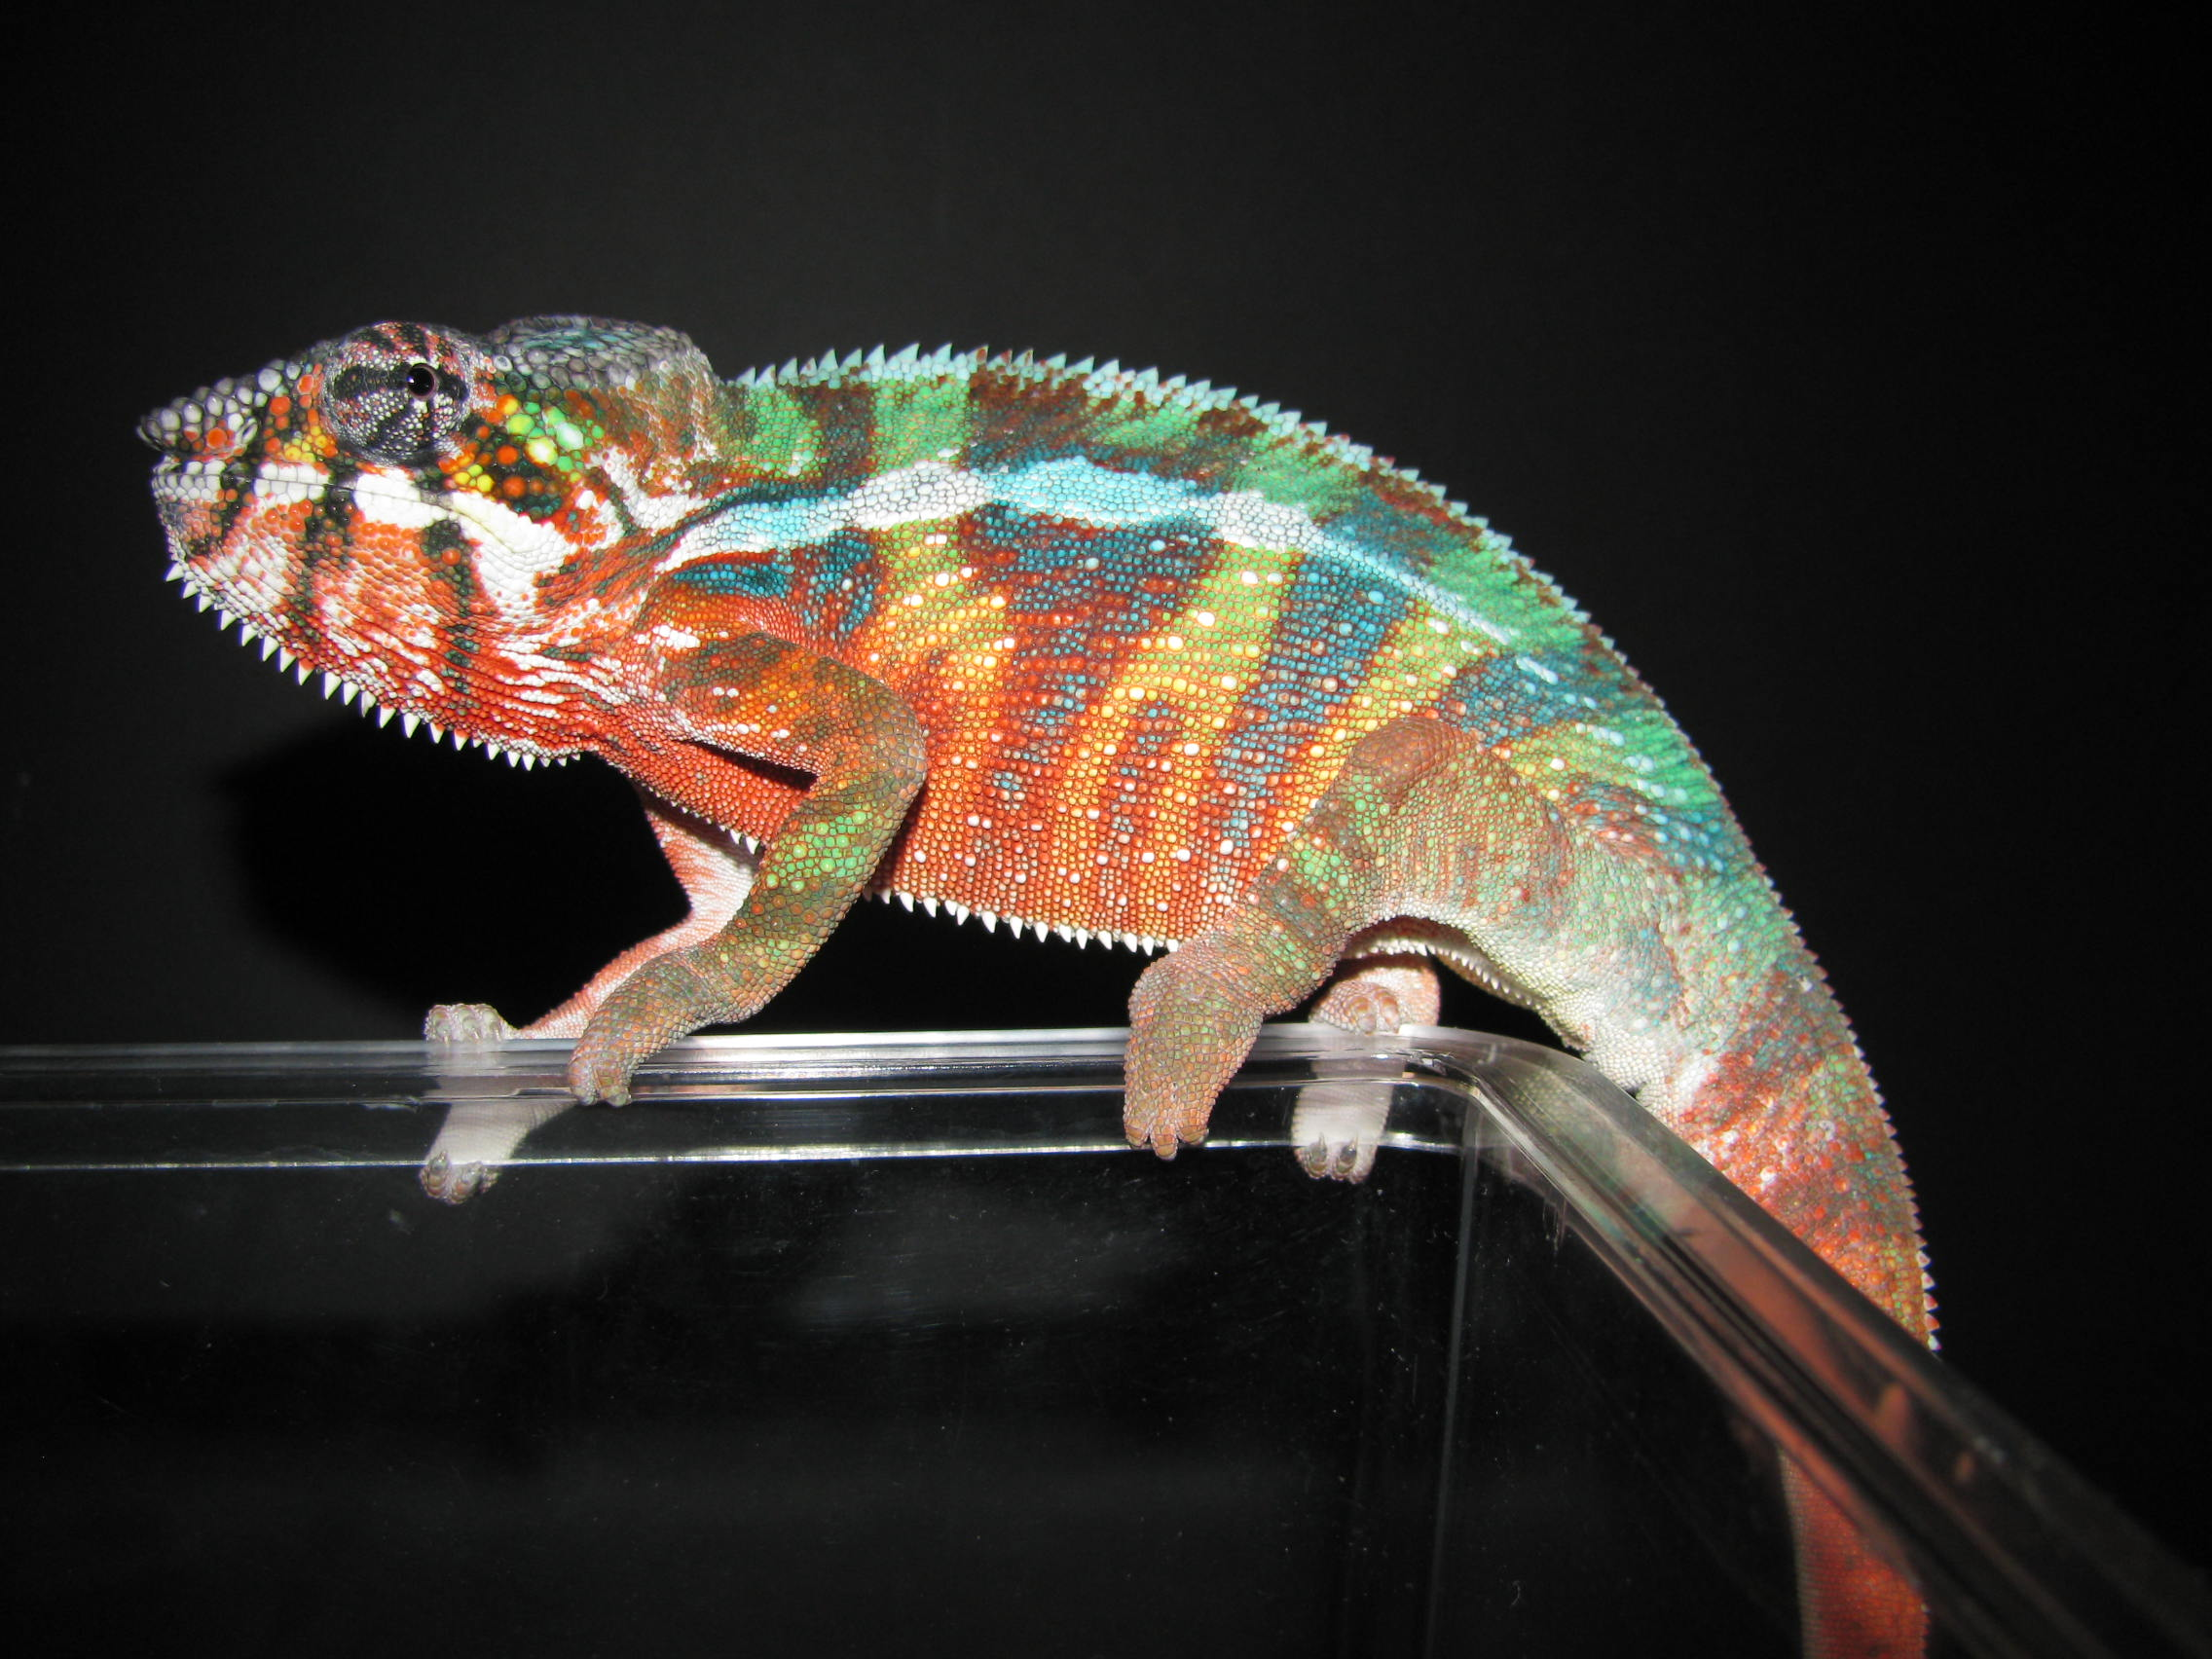 New Breeder Male Posing